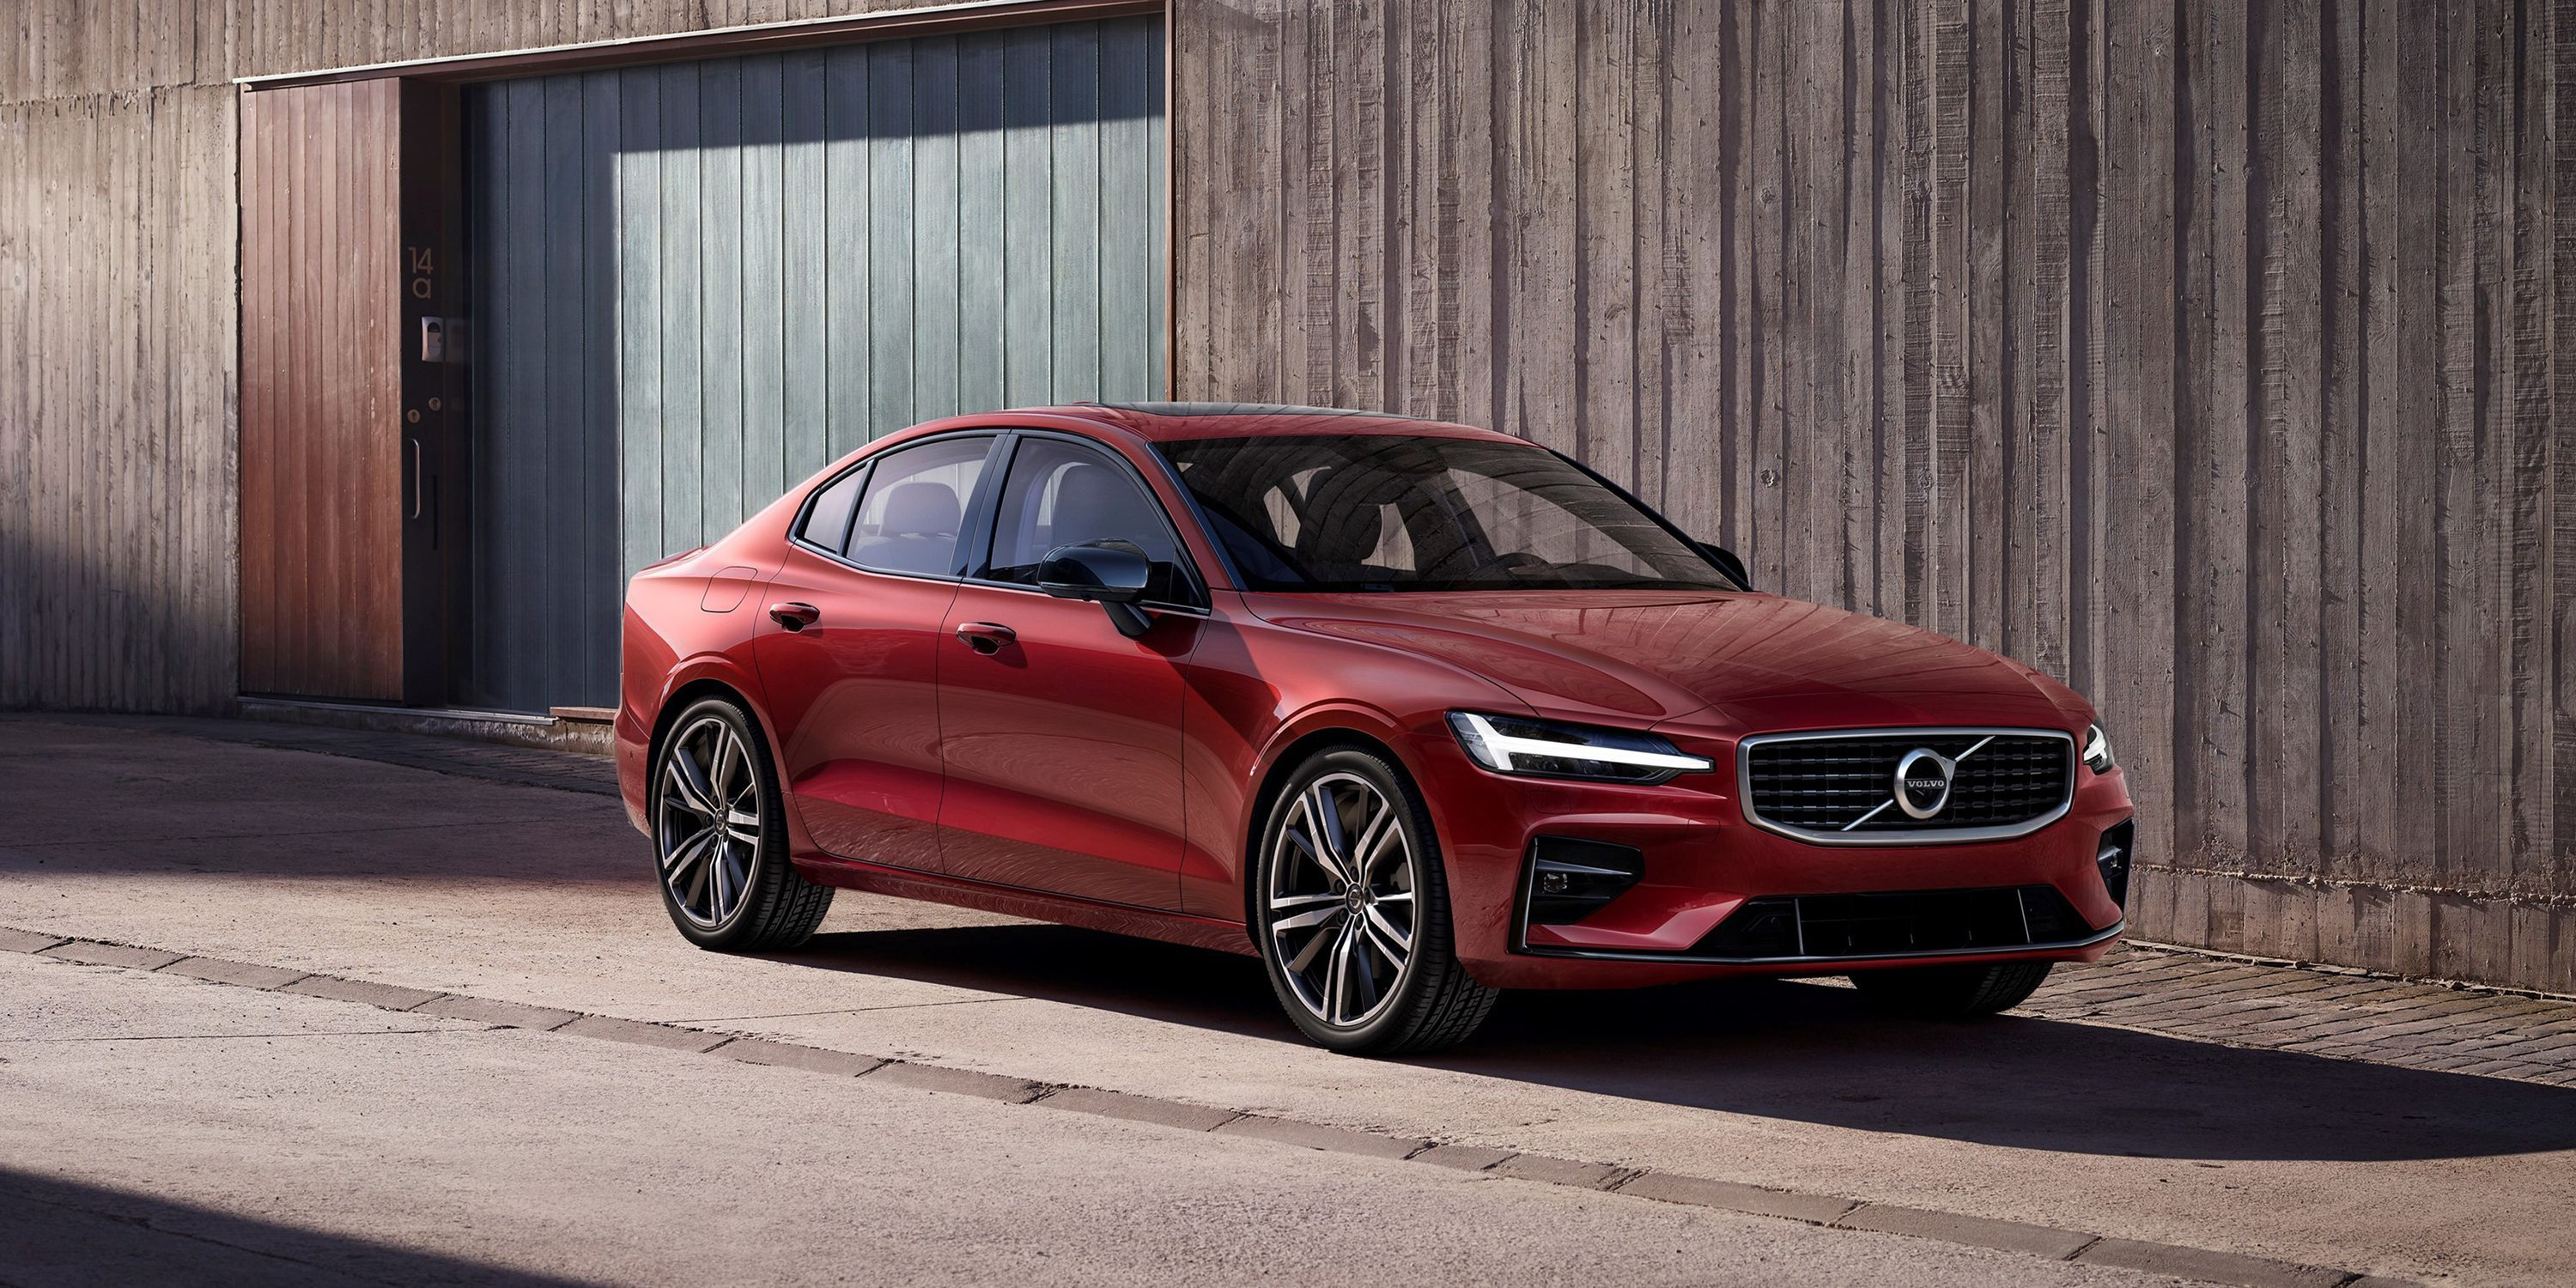 The 2019 Volvo S60 Sounds Like It Could Be A Real Sleeper With Images Volvo S60 Volvo Volvo V60